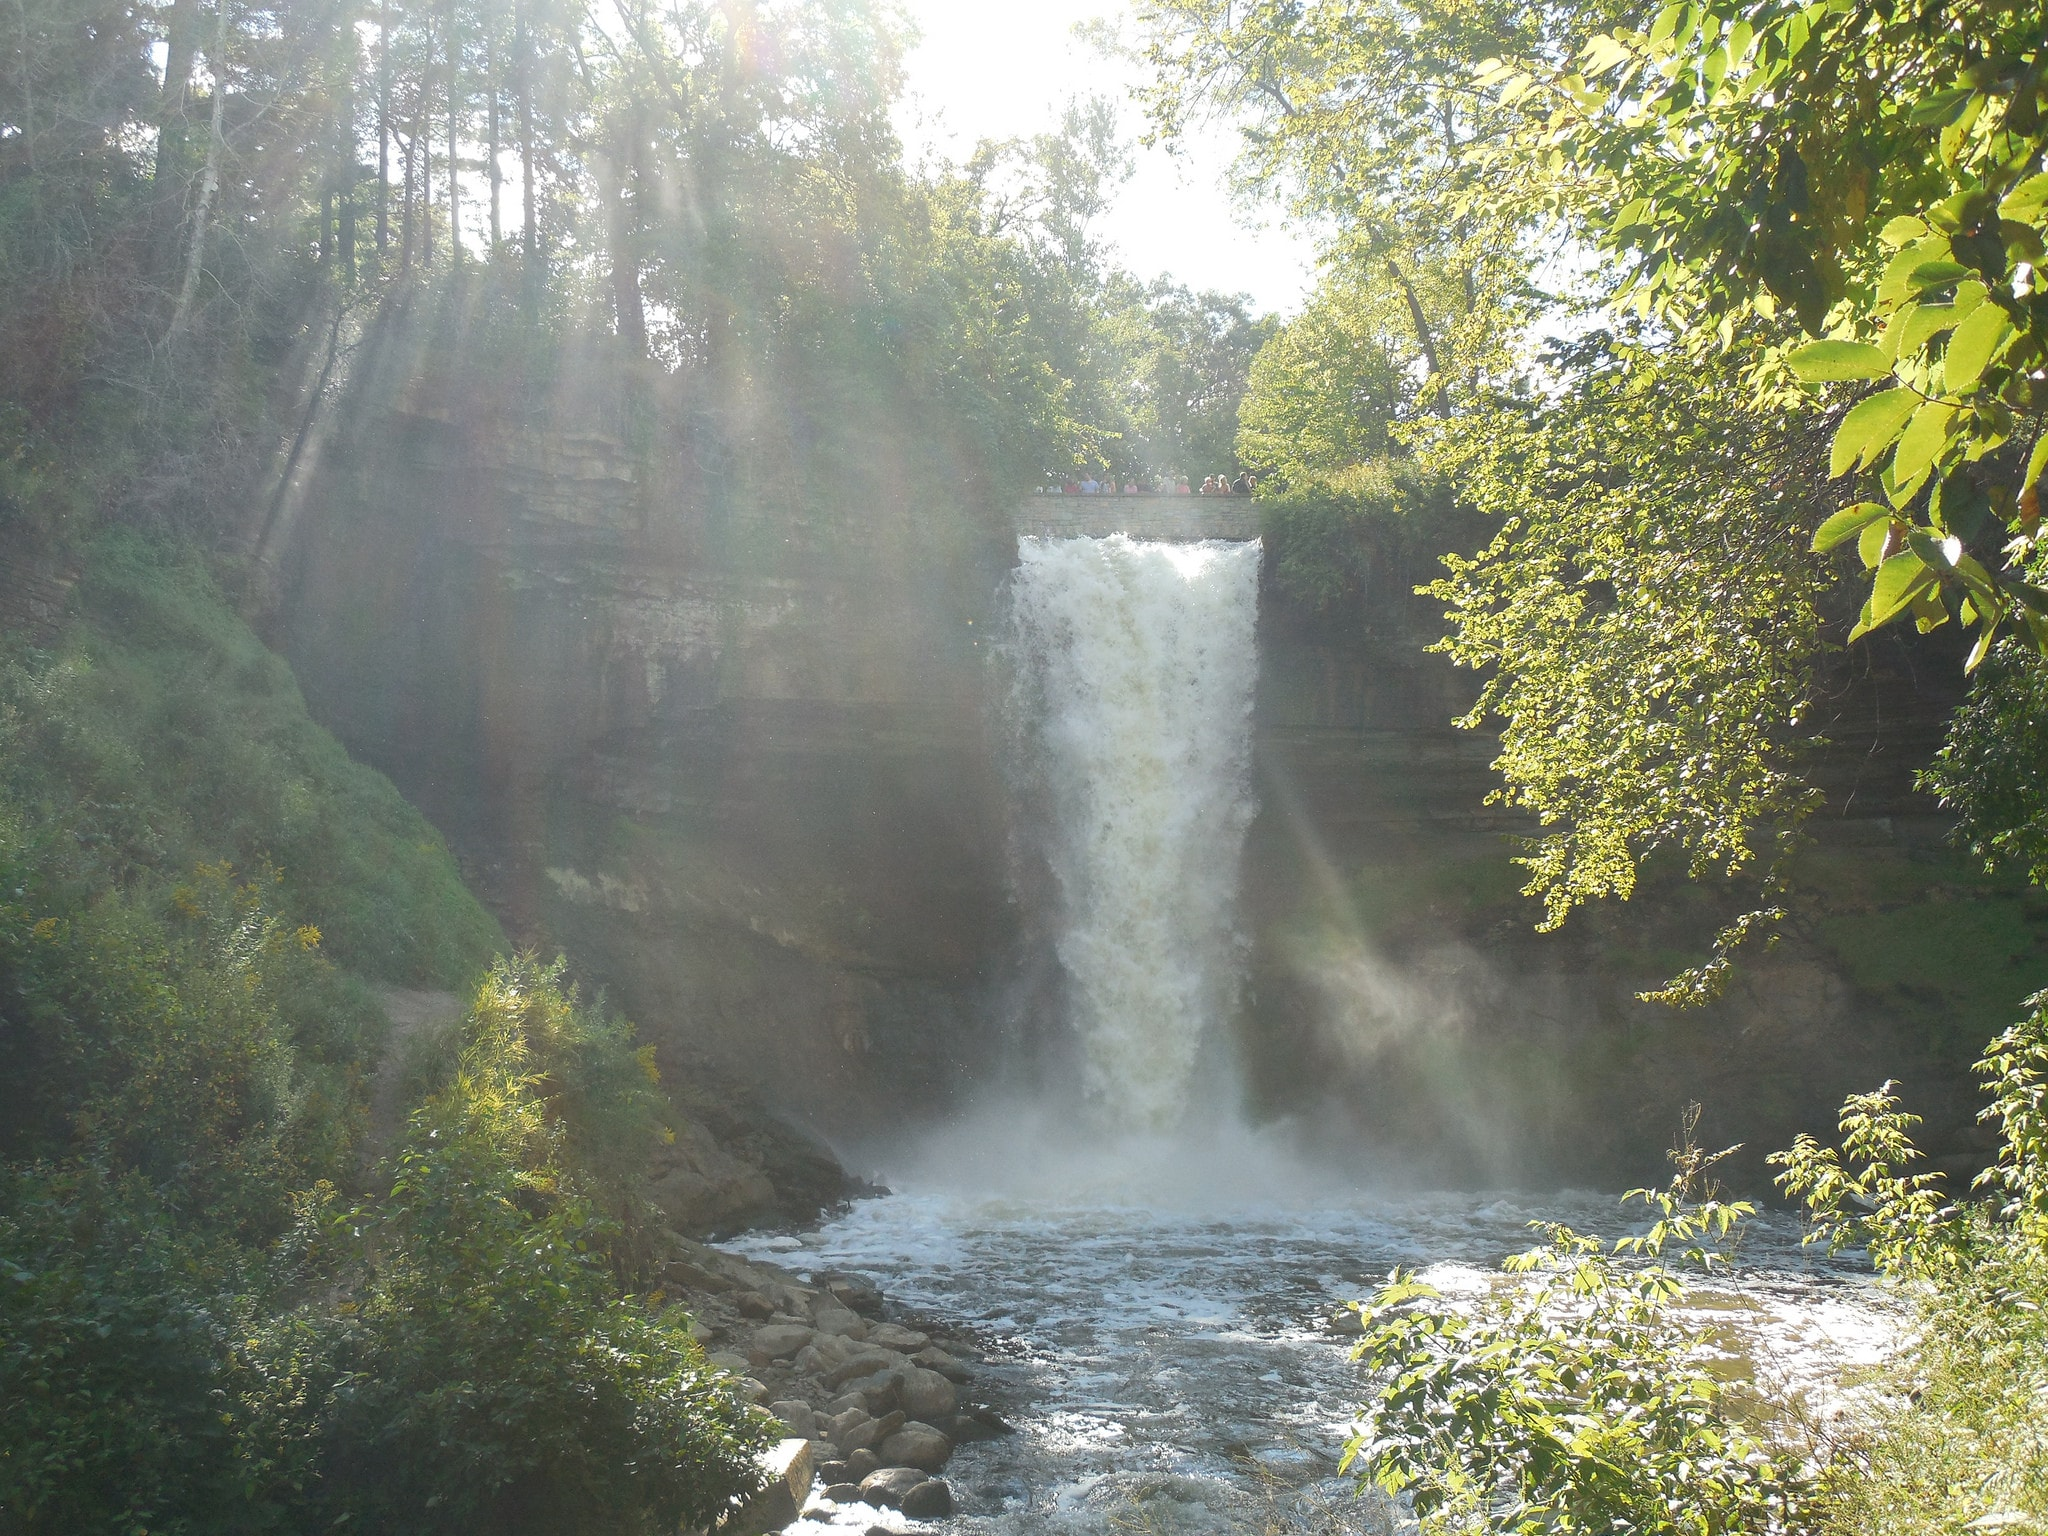 Minnehaha Falls in Minneapolis Doug Kerr